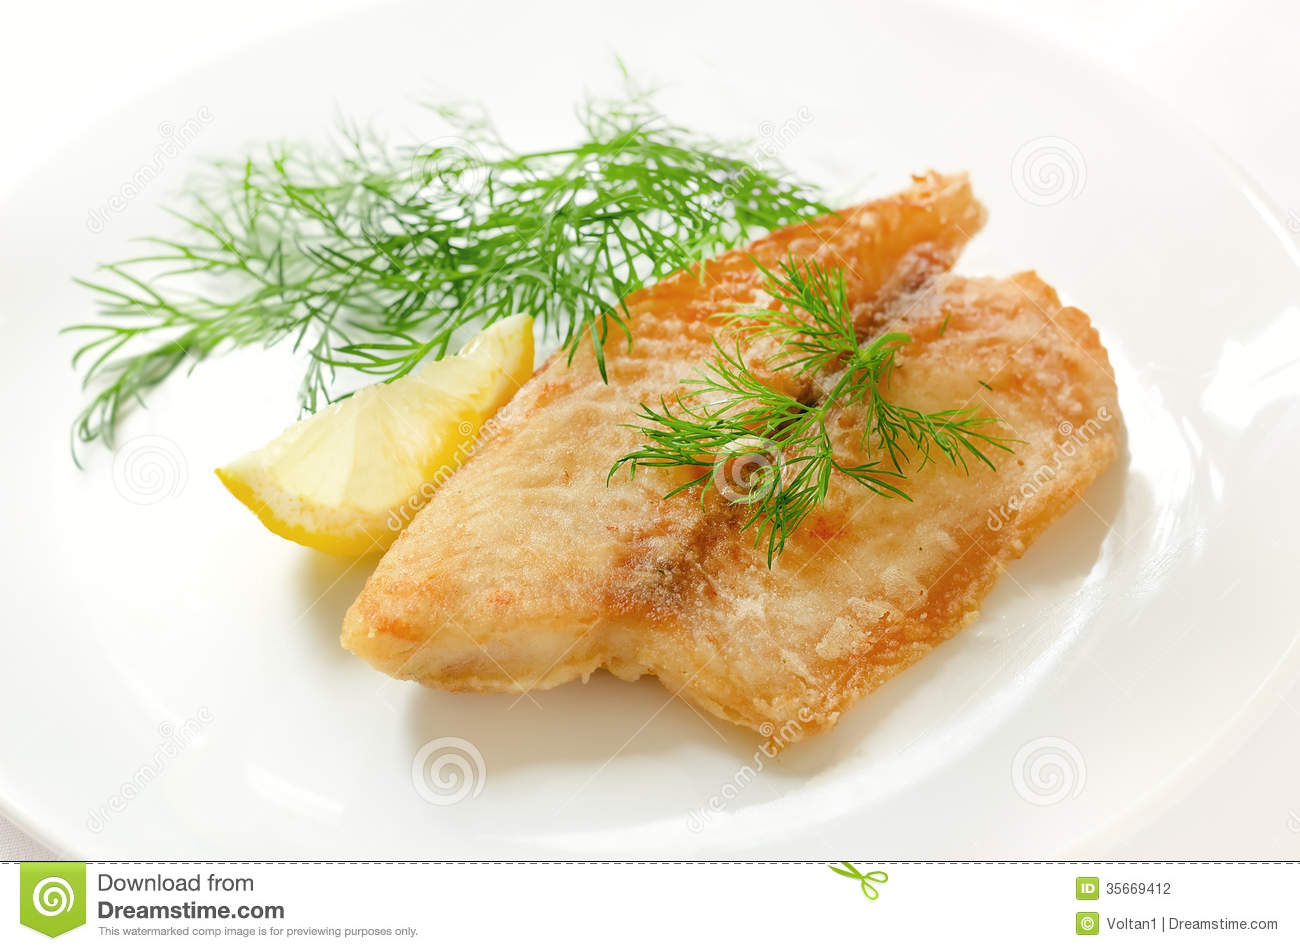 Fried fish fillet stock photography image 35669412 for Fried fish fillet